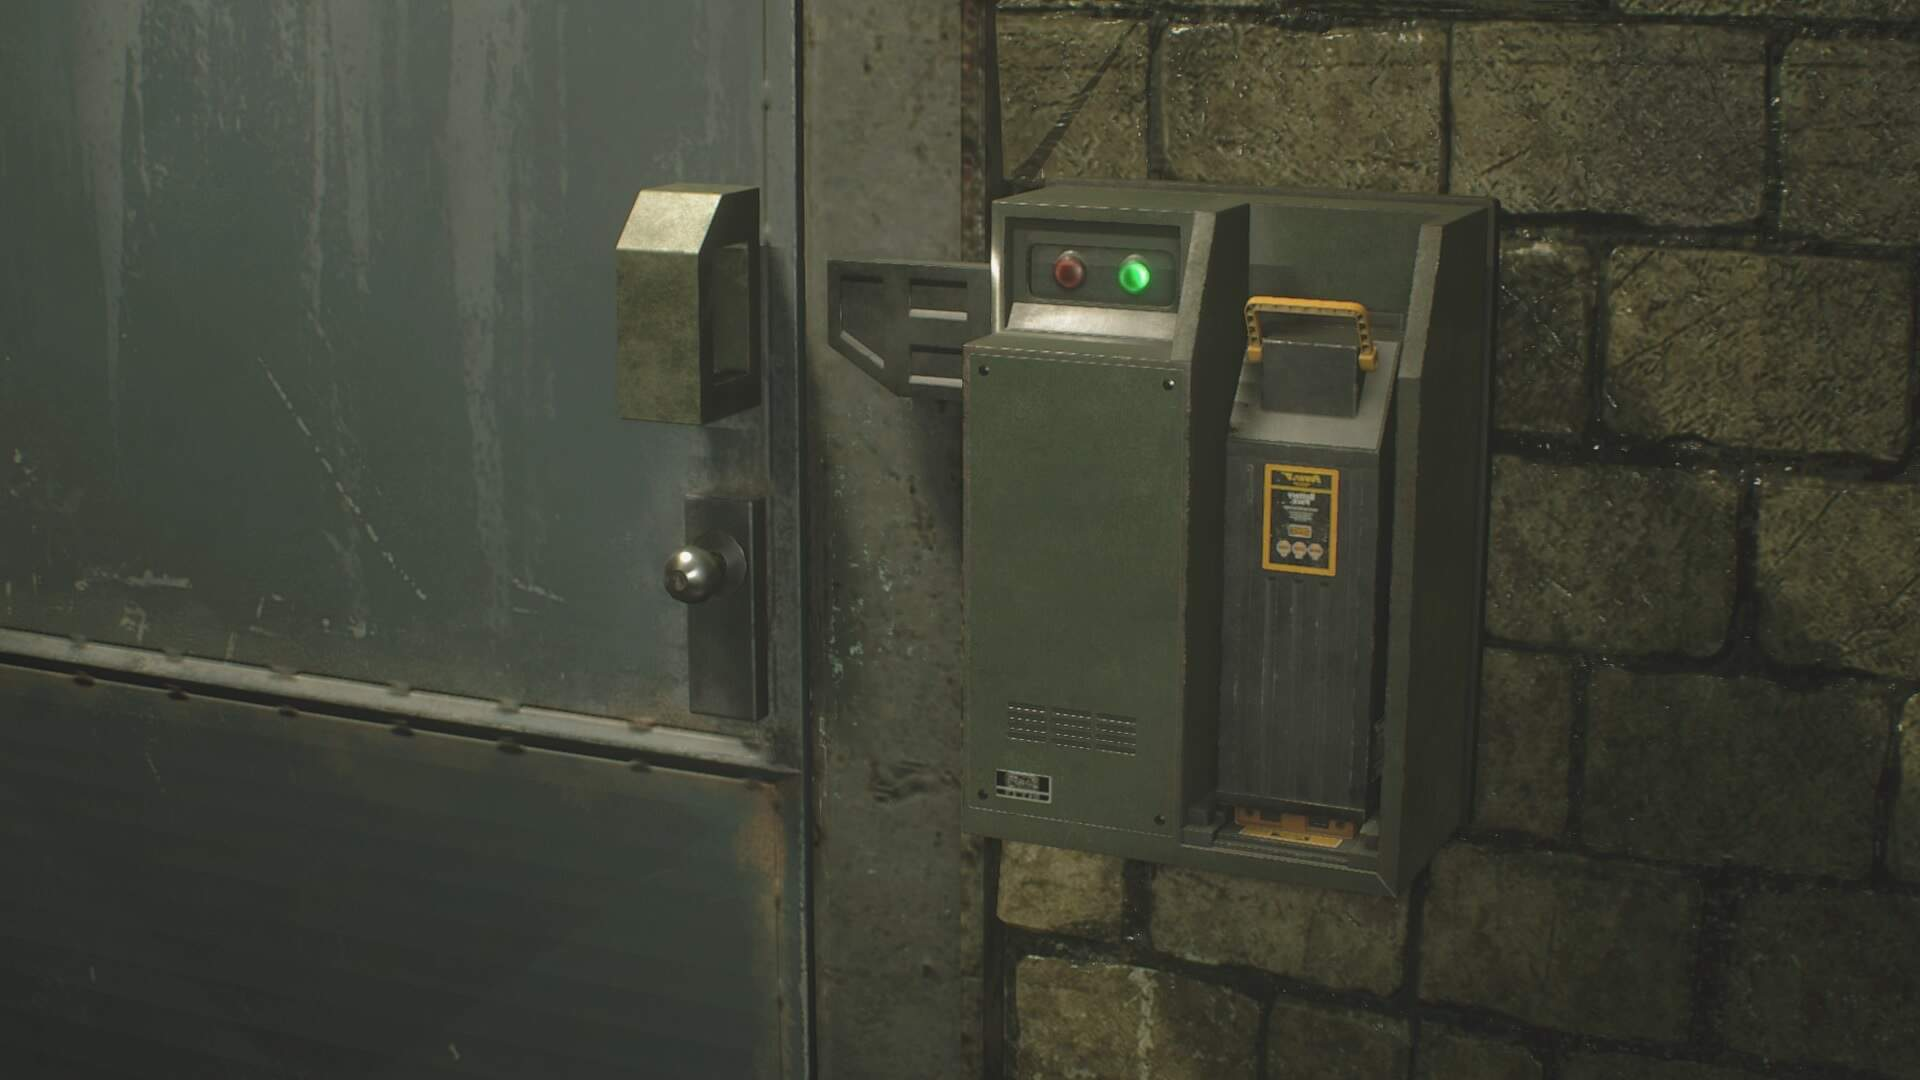 Resident Evil 3: How to Open the Electronic Locks in the Sewers